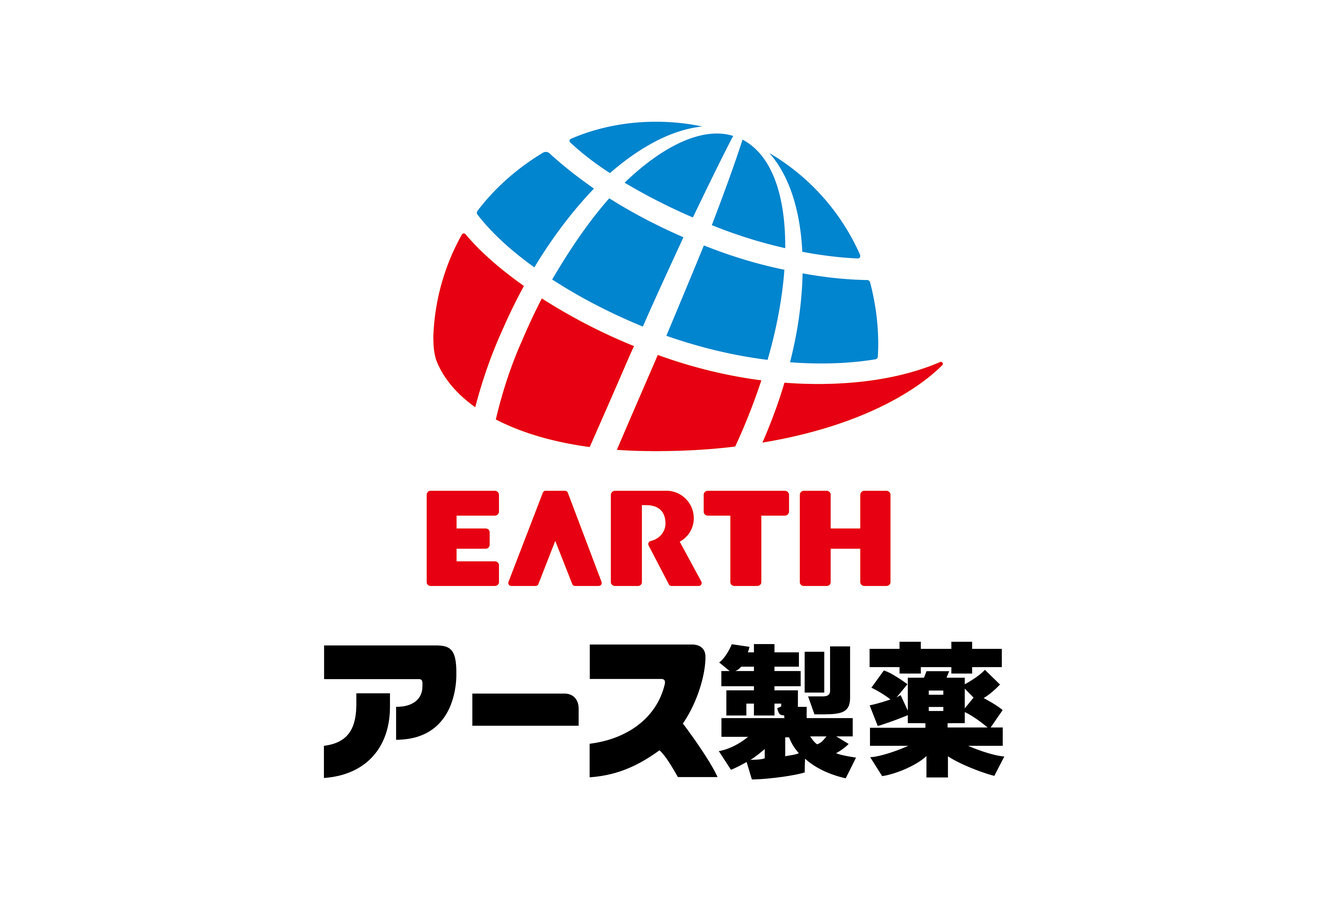 Tokyo 2020 unveil Earth Chemical as latest official partner